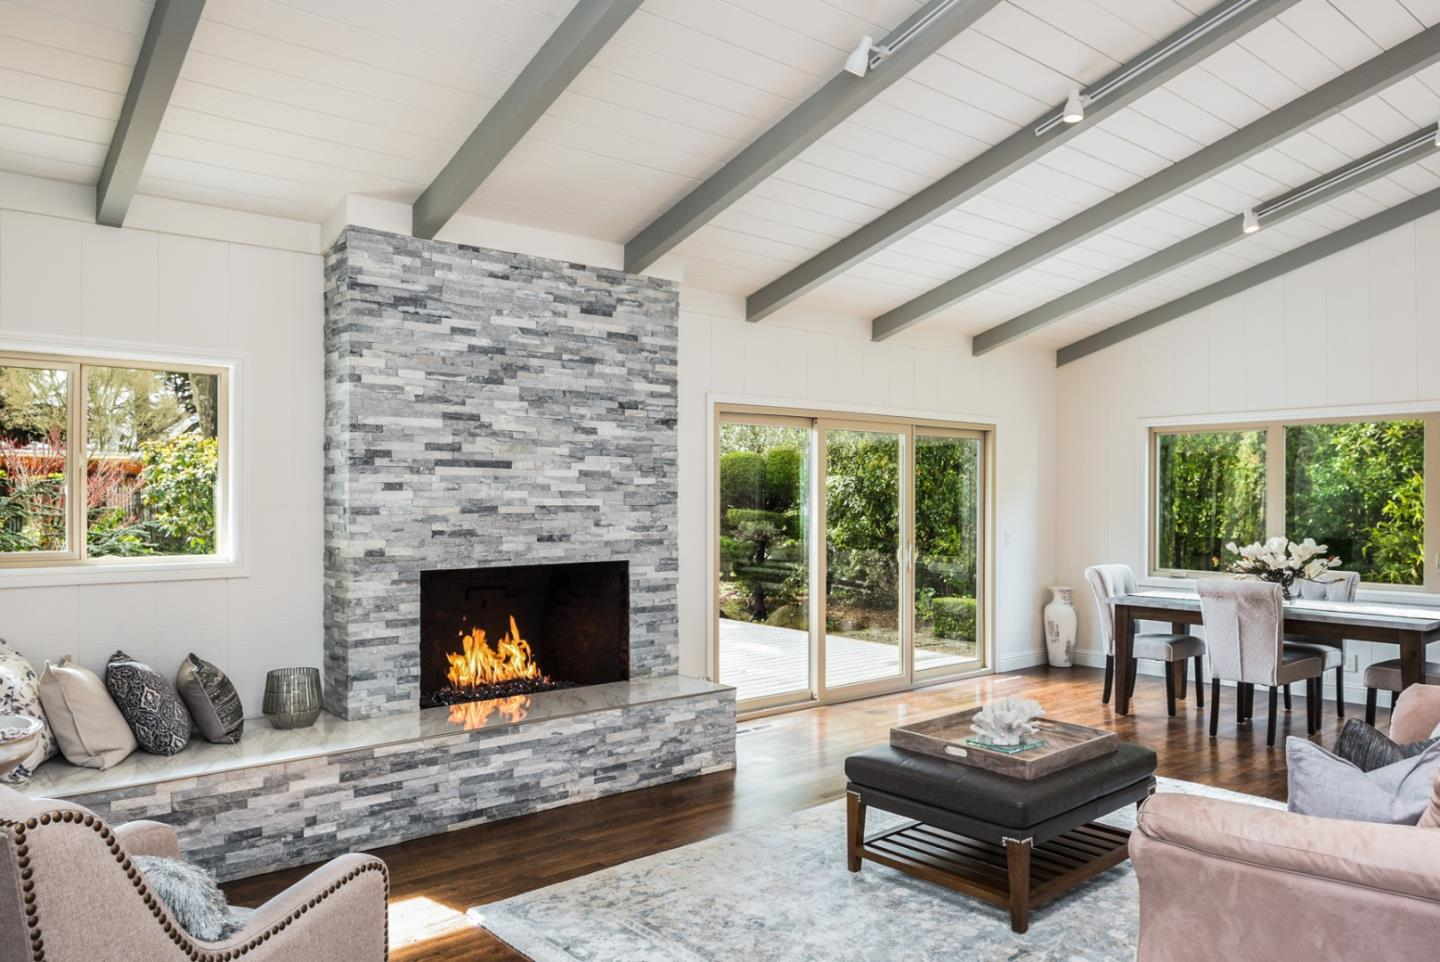 26021 Atherton DR, Carmel in Monterey County, CA 93923 Home for Sale